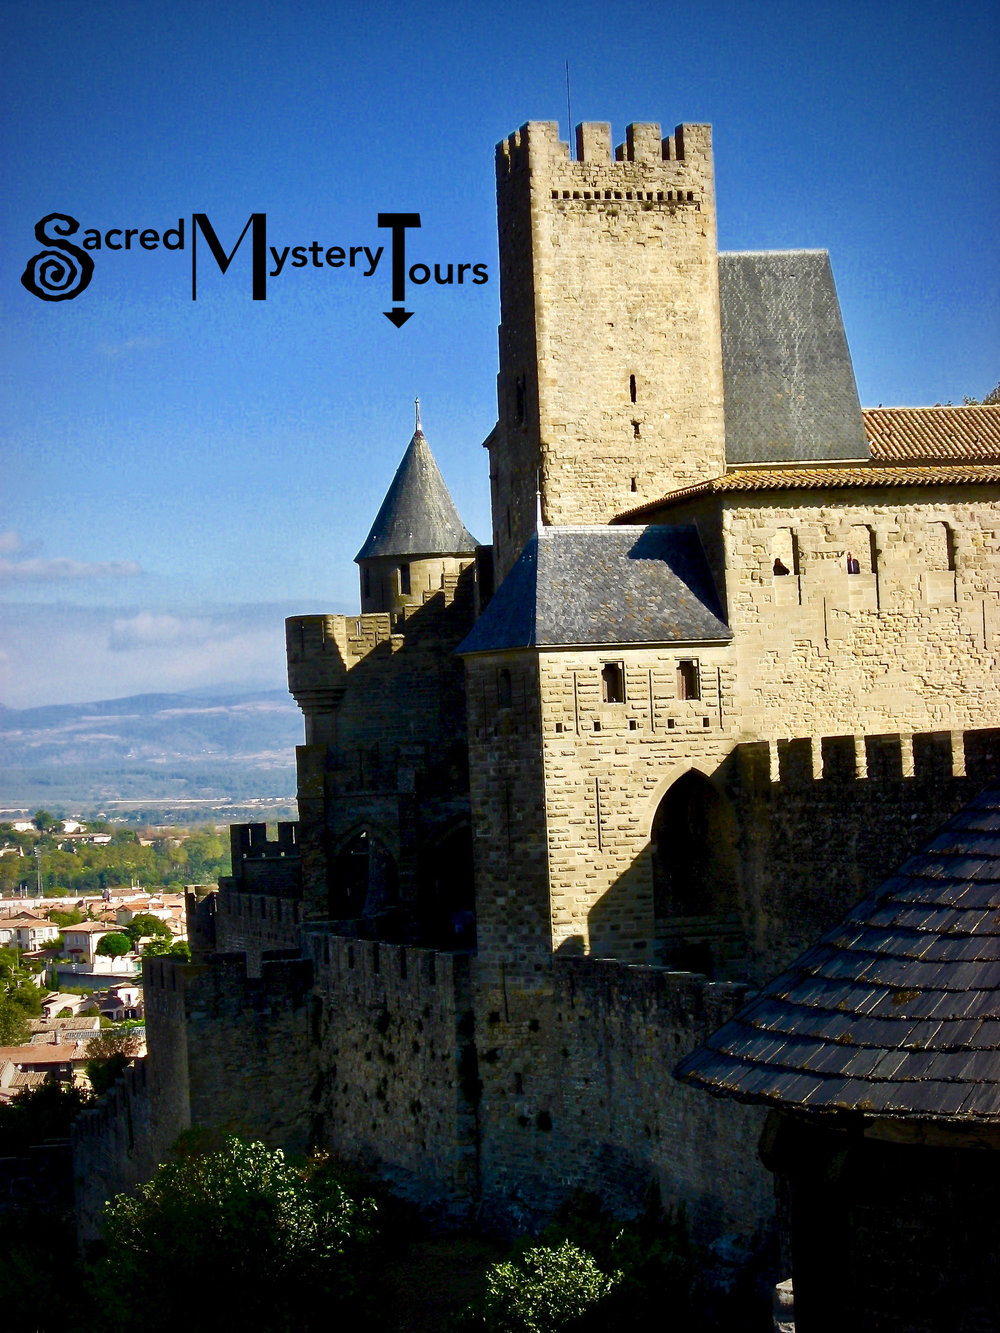 The Medieval Citadel of Carcassonne in the South of France.